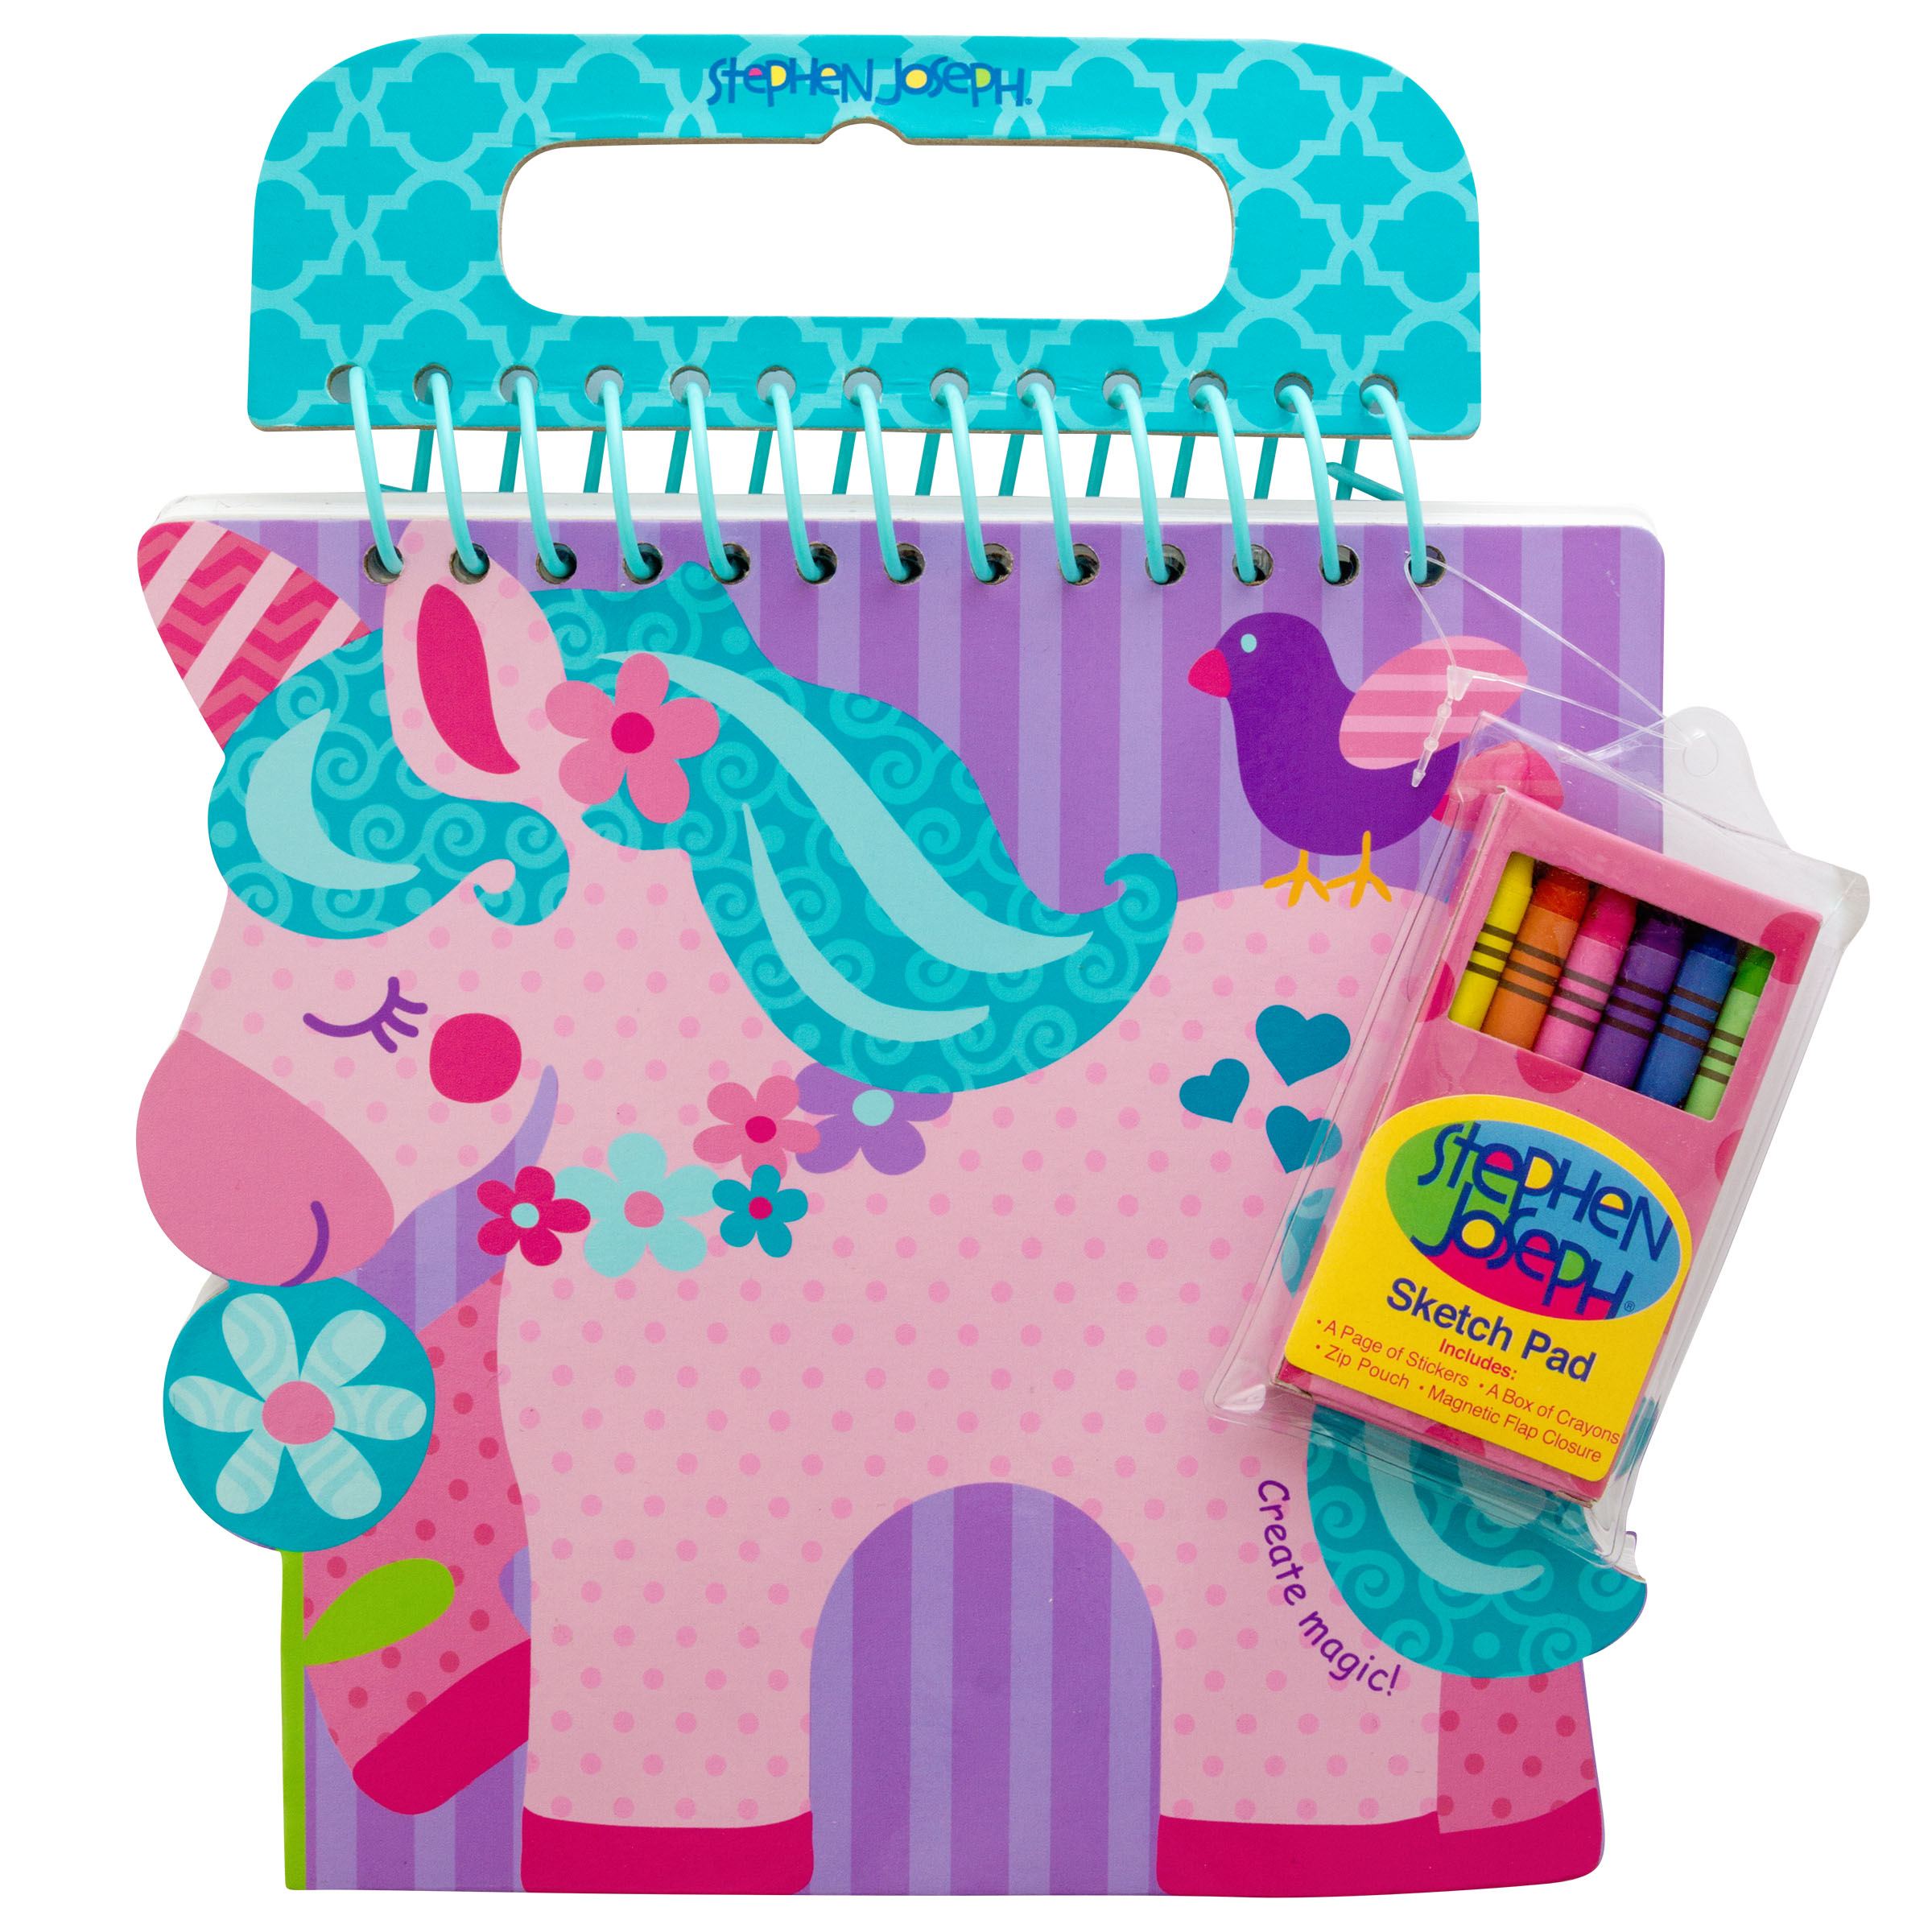 Shaped Sketch Pad, Unicorn